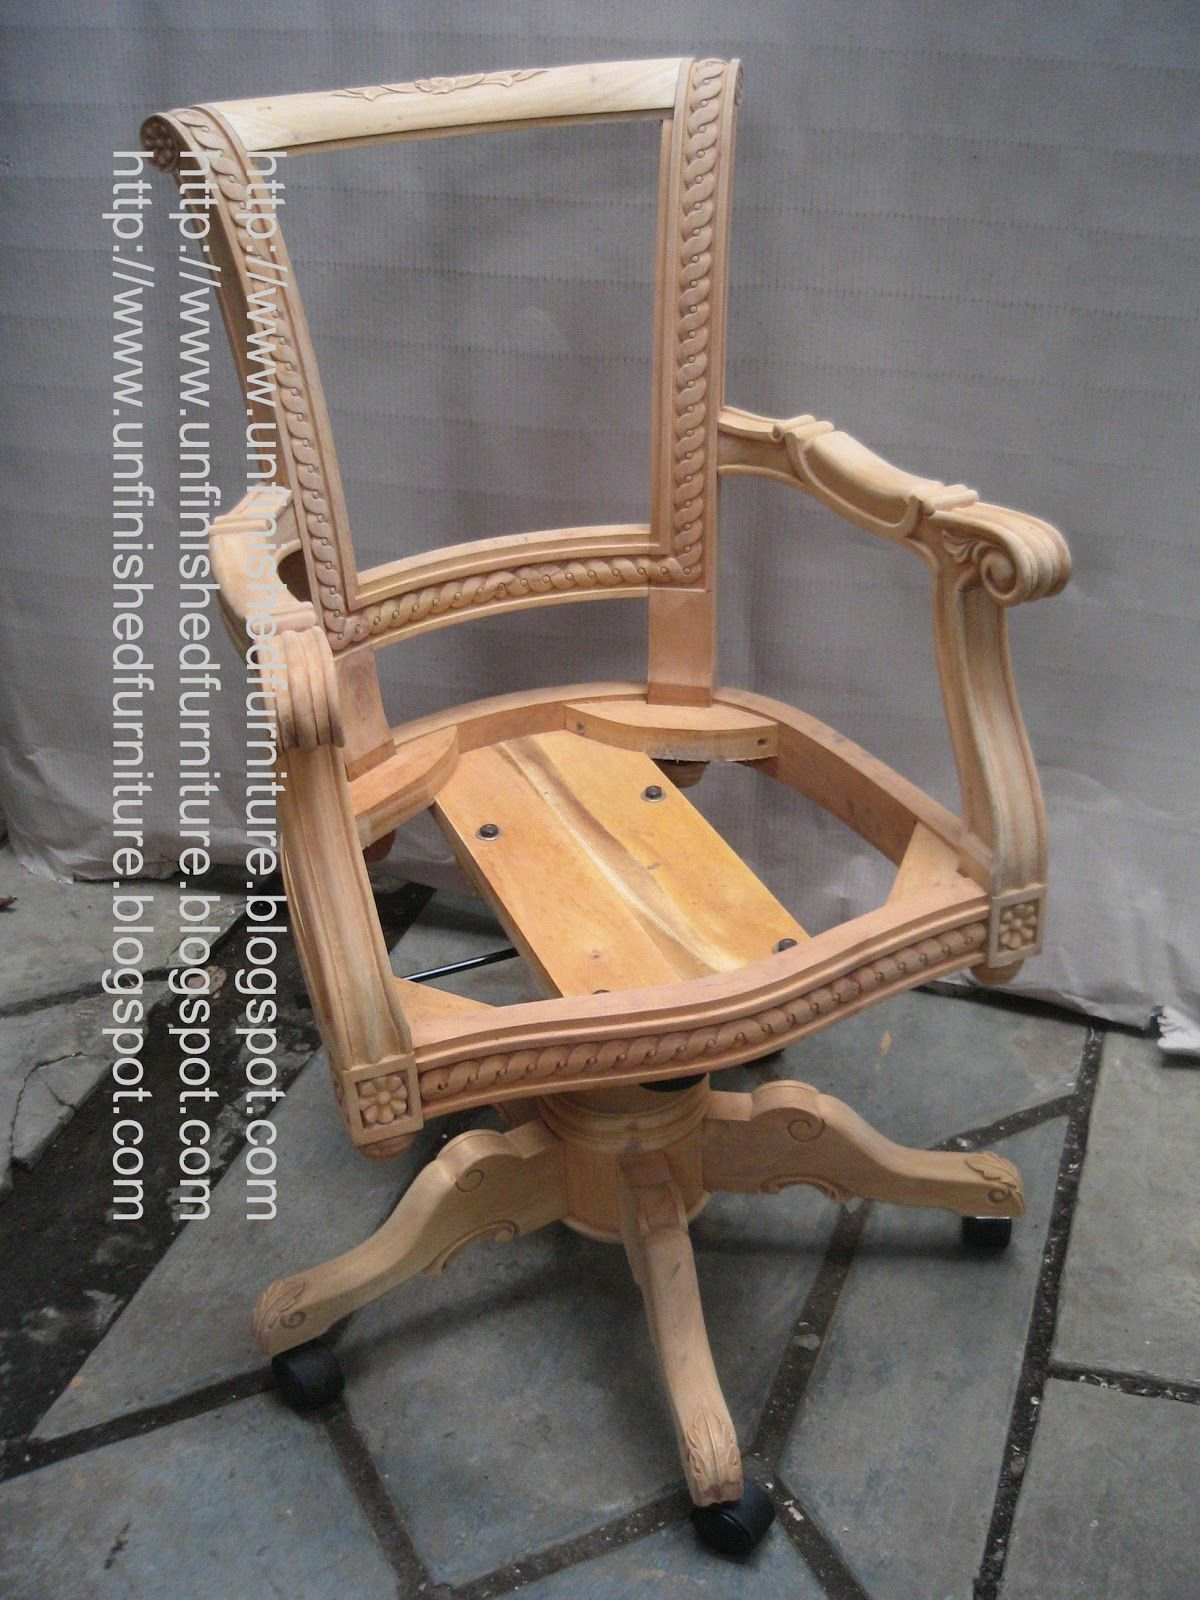 Unfinished classic furniture classic director chair unfinished wooden frame chair mahogany indonesia classic reproduction furniture